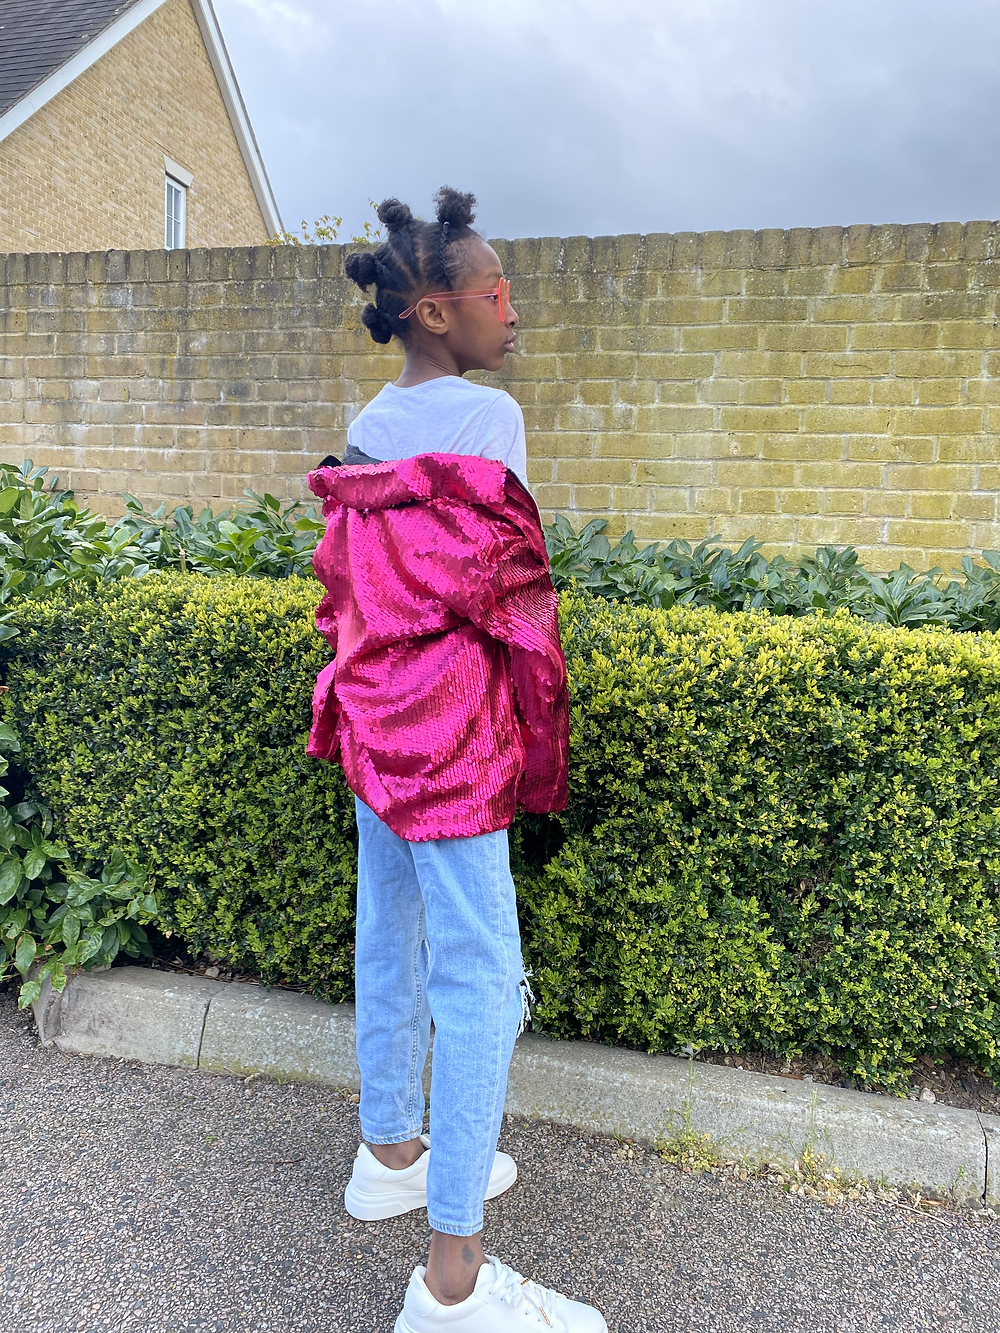 fashion blogger smiling kid teen stylish outfit